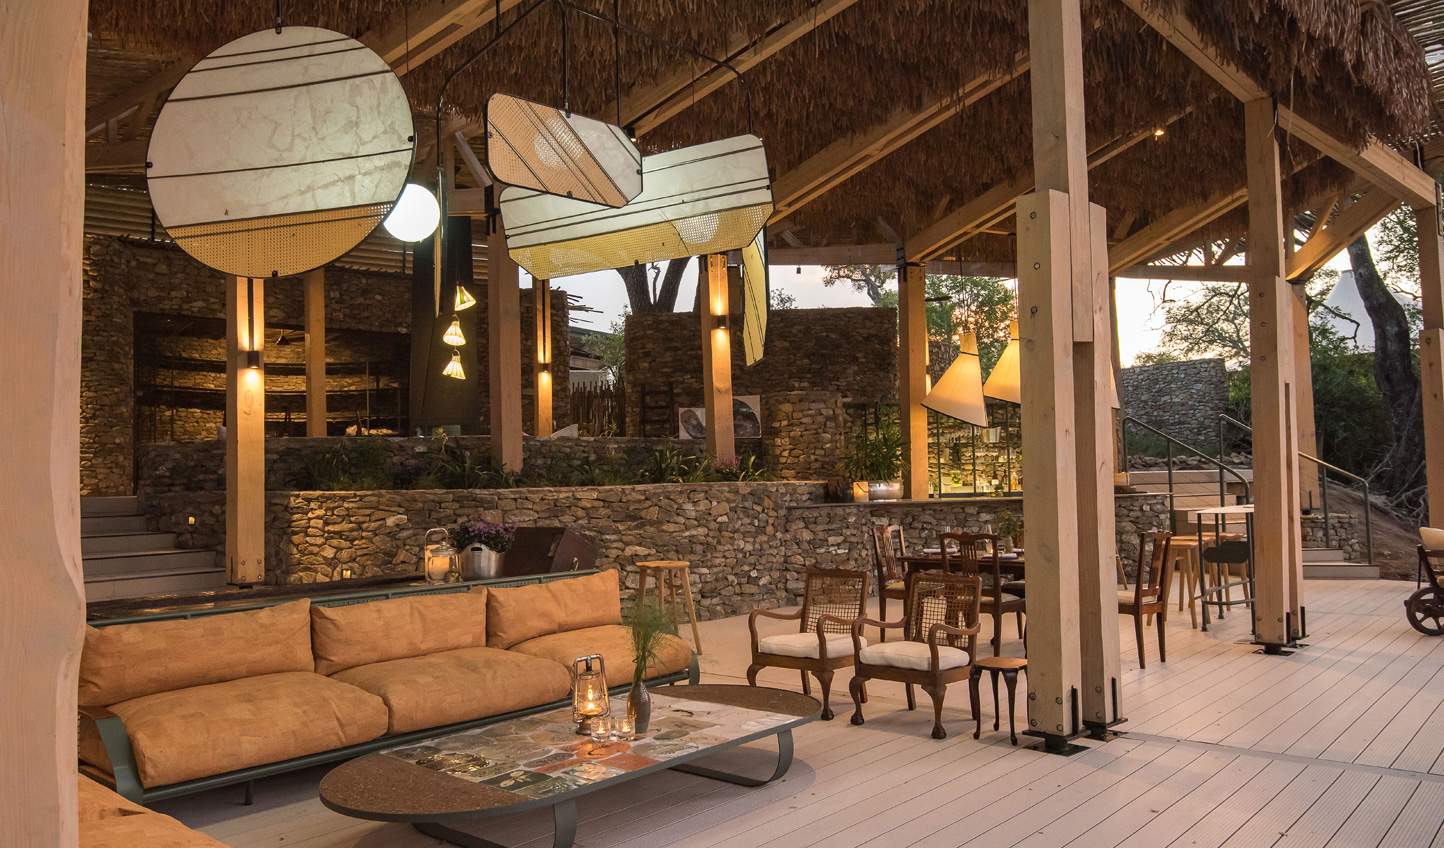 Modern luxury in your African home-away-from-home